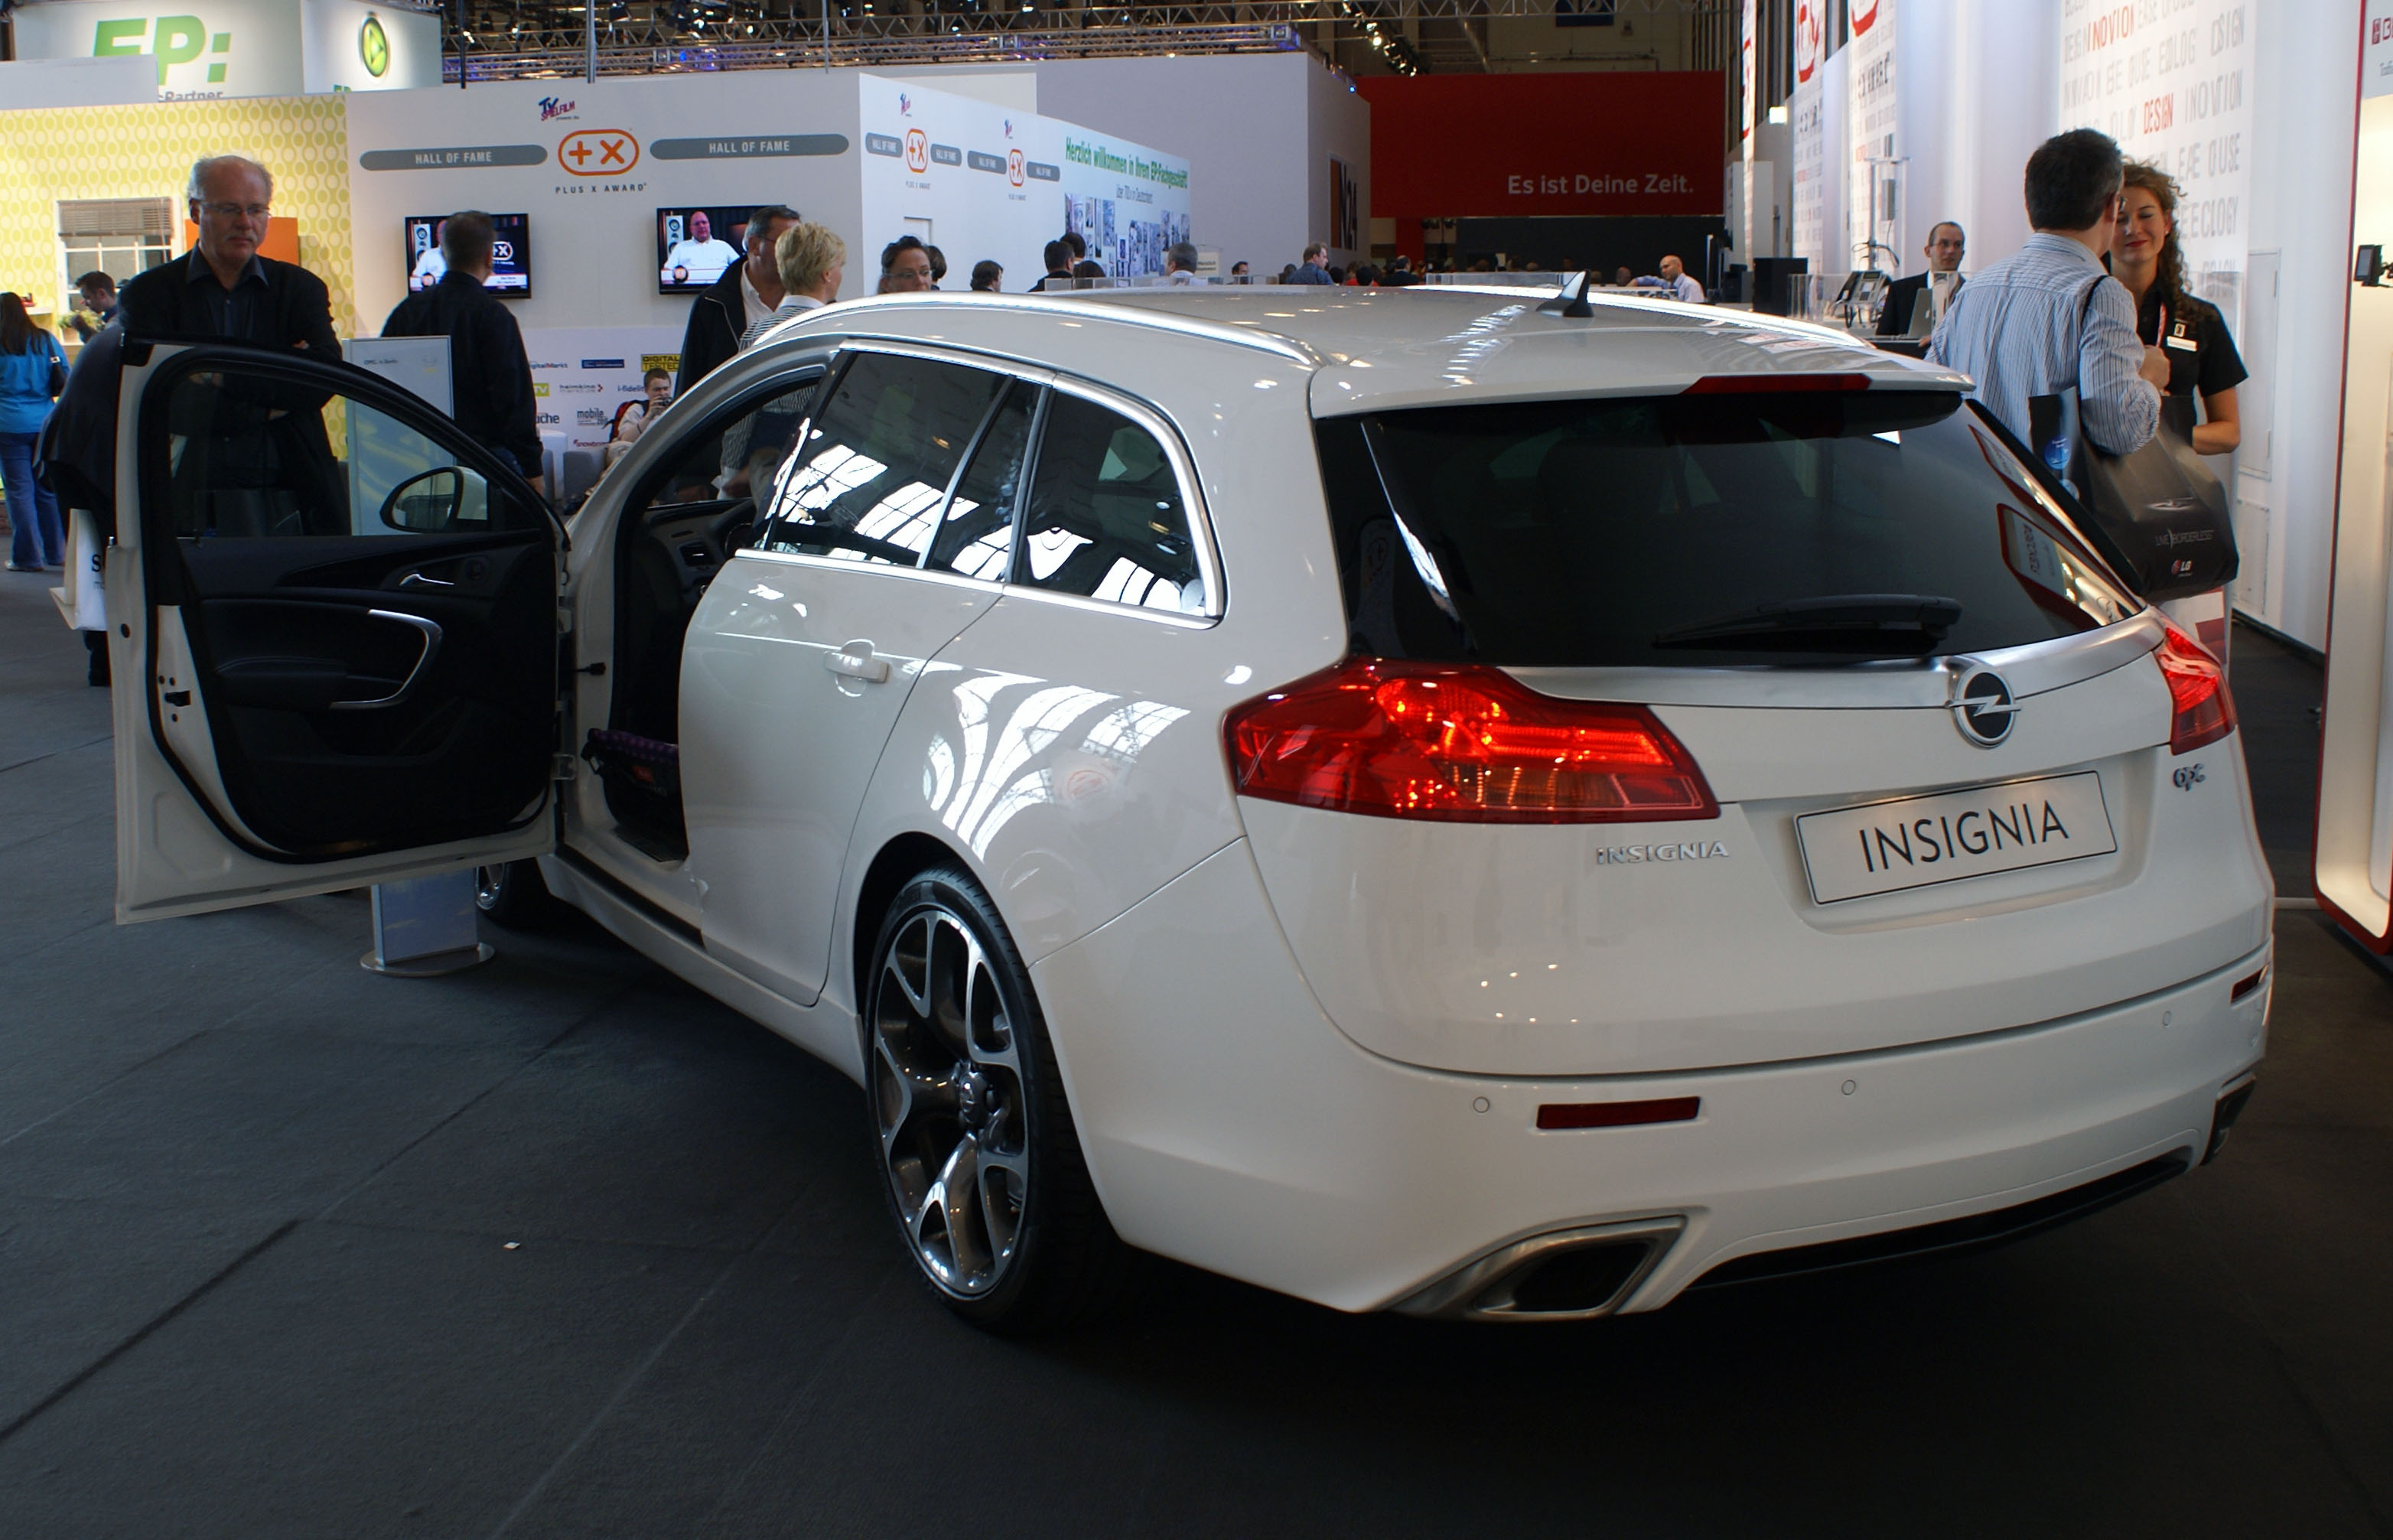 Opel insignia opc sports tourer 5 at 2010 opel insignia opc sports - Description Opel Insignia Opc Caravan White At Ifa 2009 Jpg Car Wallpapers Opel Insignia Opc Sports Tourer